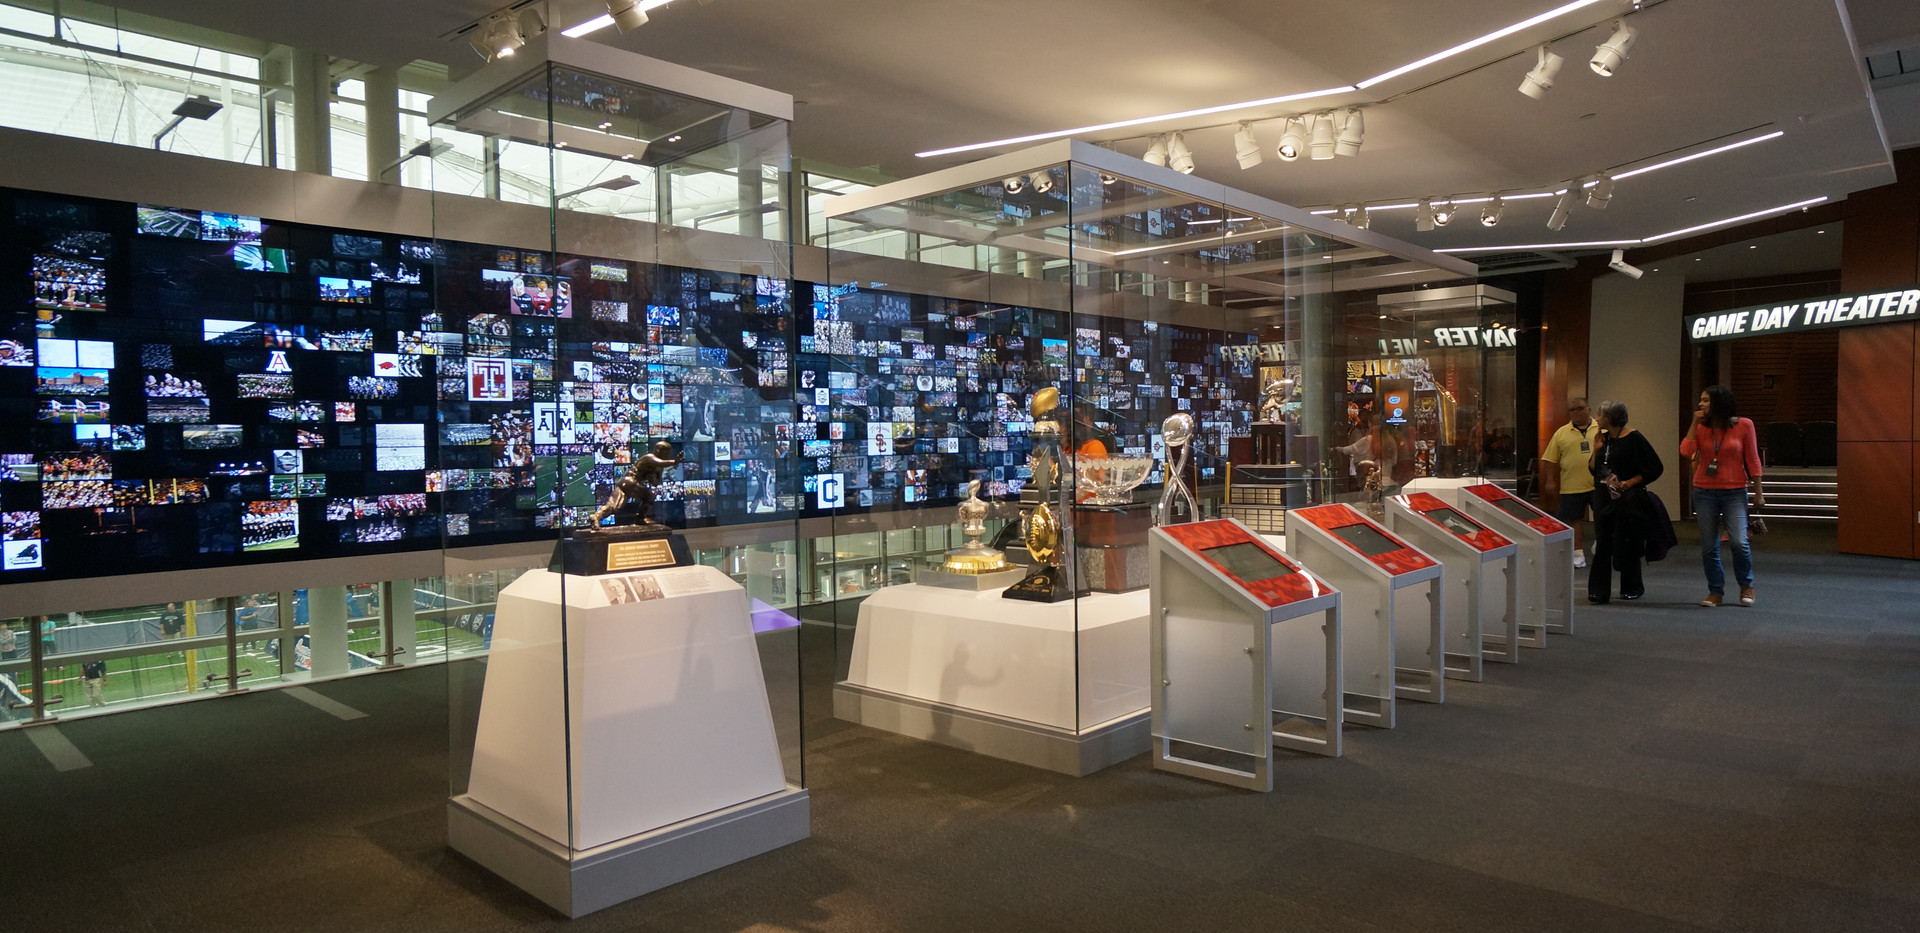 College Football Hall of Fame Why We Love